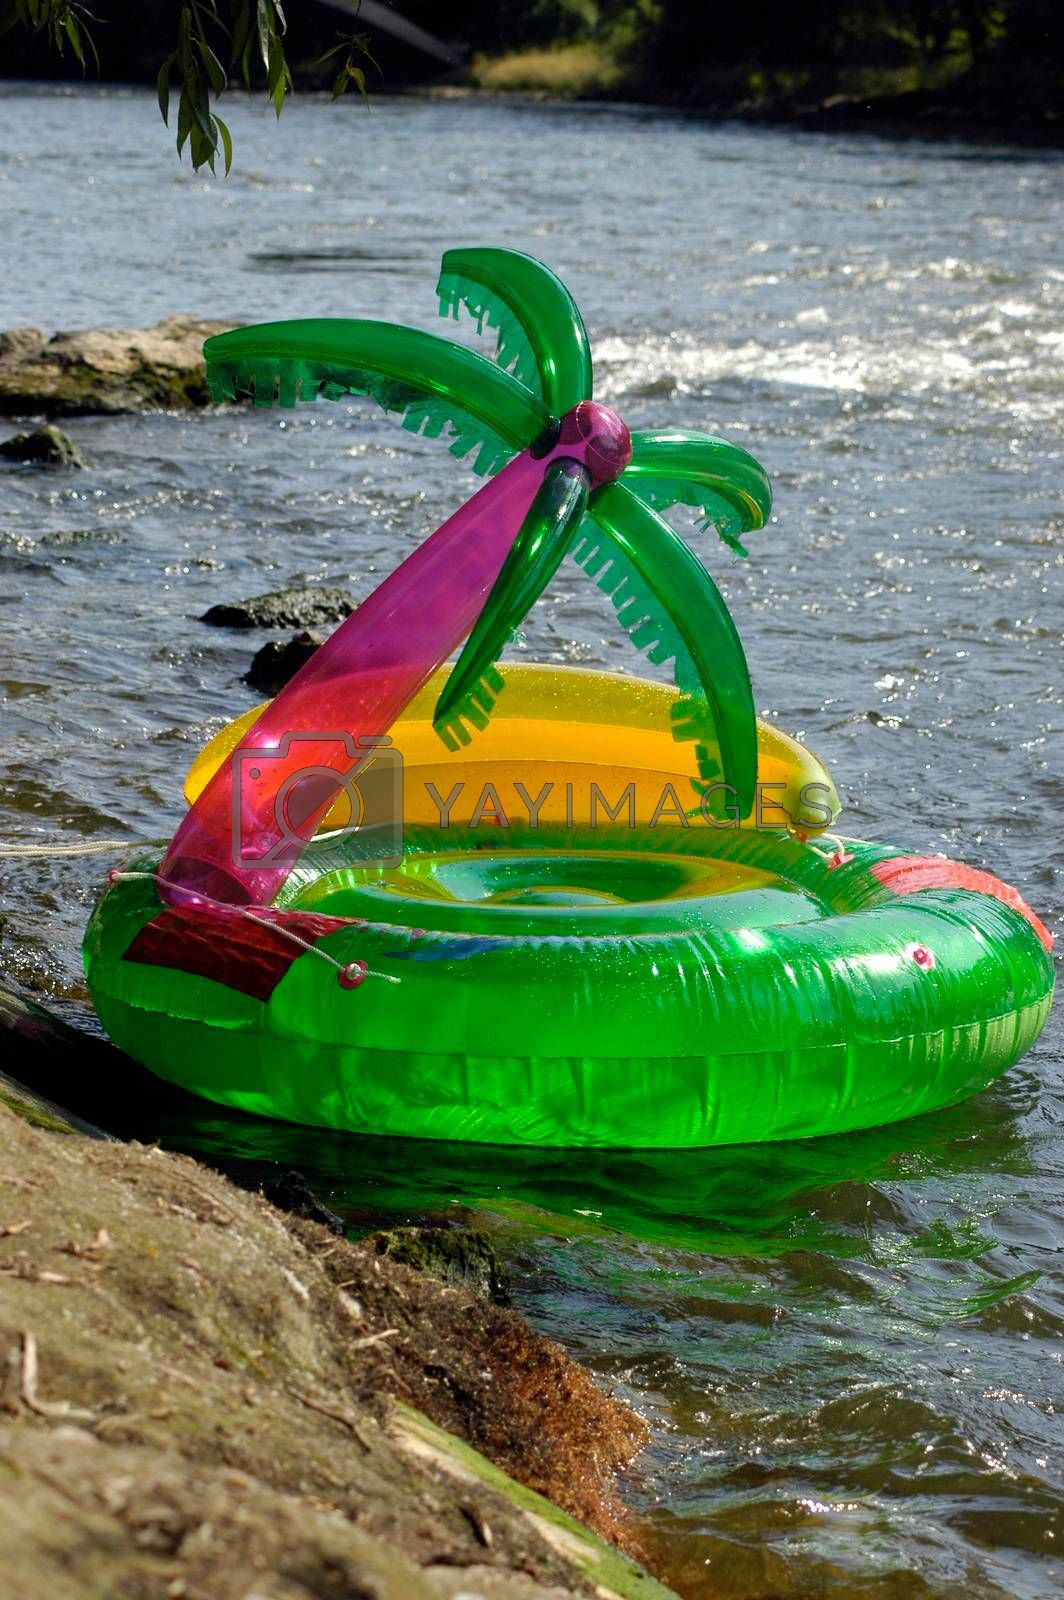 inflatable boat for water sports and water activities in summer